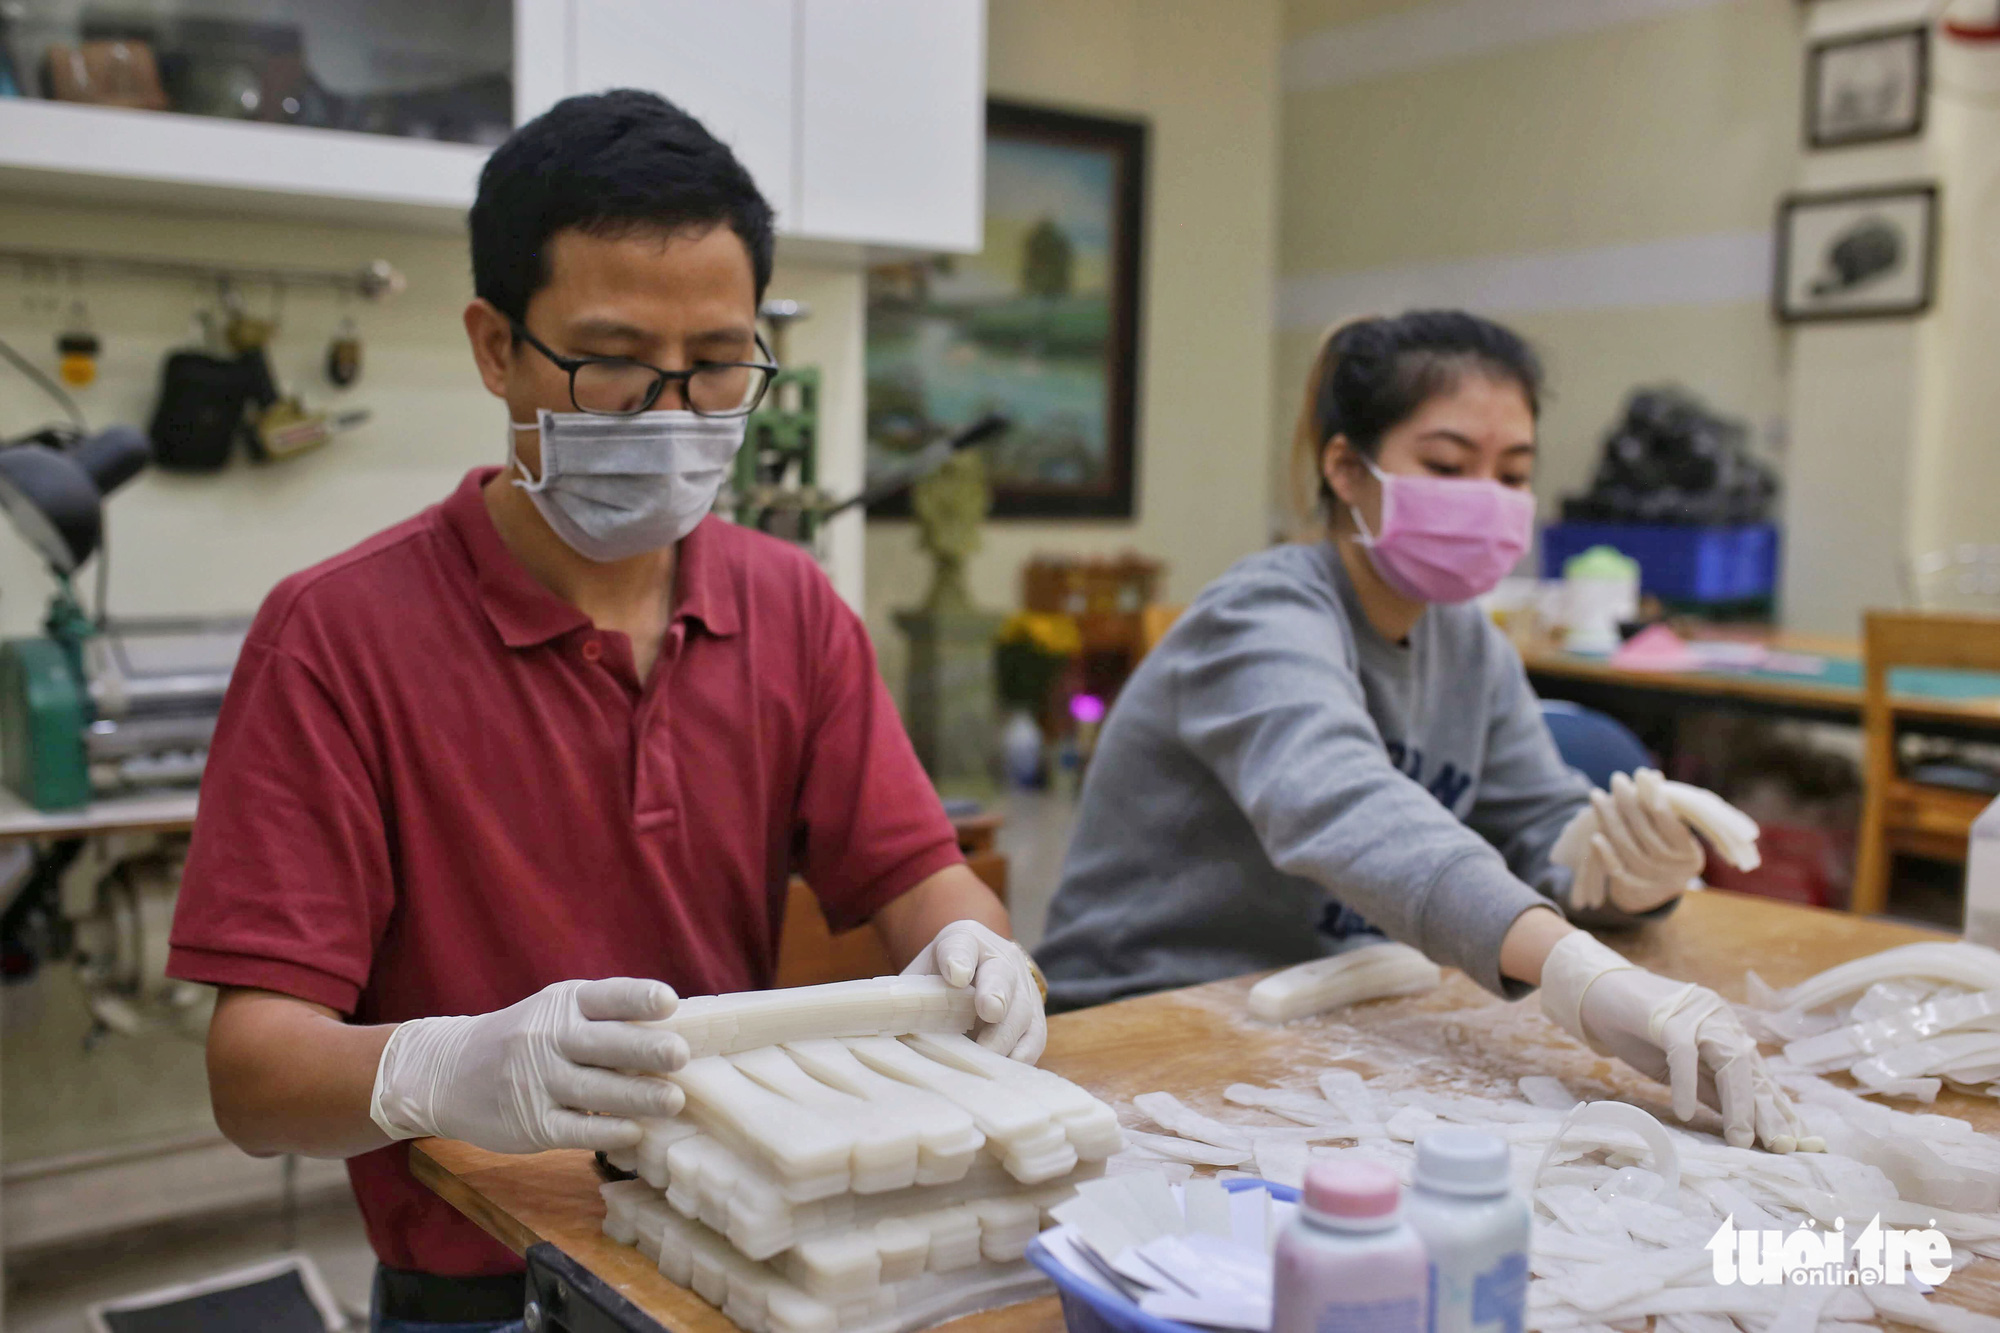 Workers package finished ear guards for delivery to hospitals at a facility in Hanoi, Vietnam. Photo: Mai Thuong / Tuoi Tre